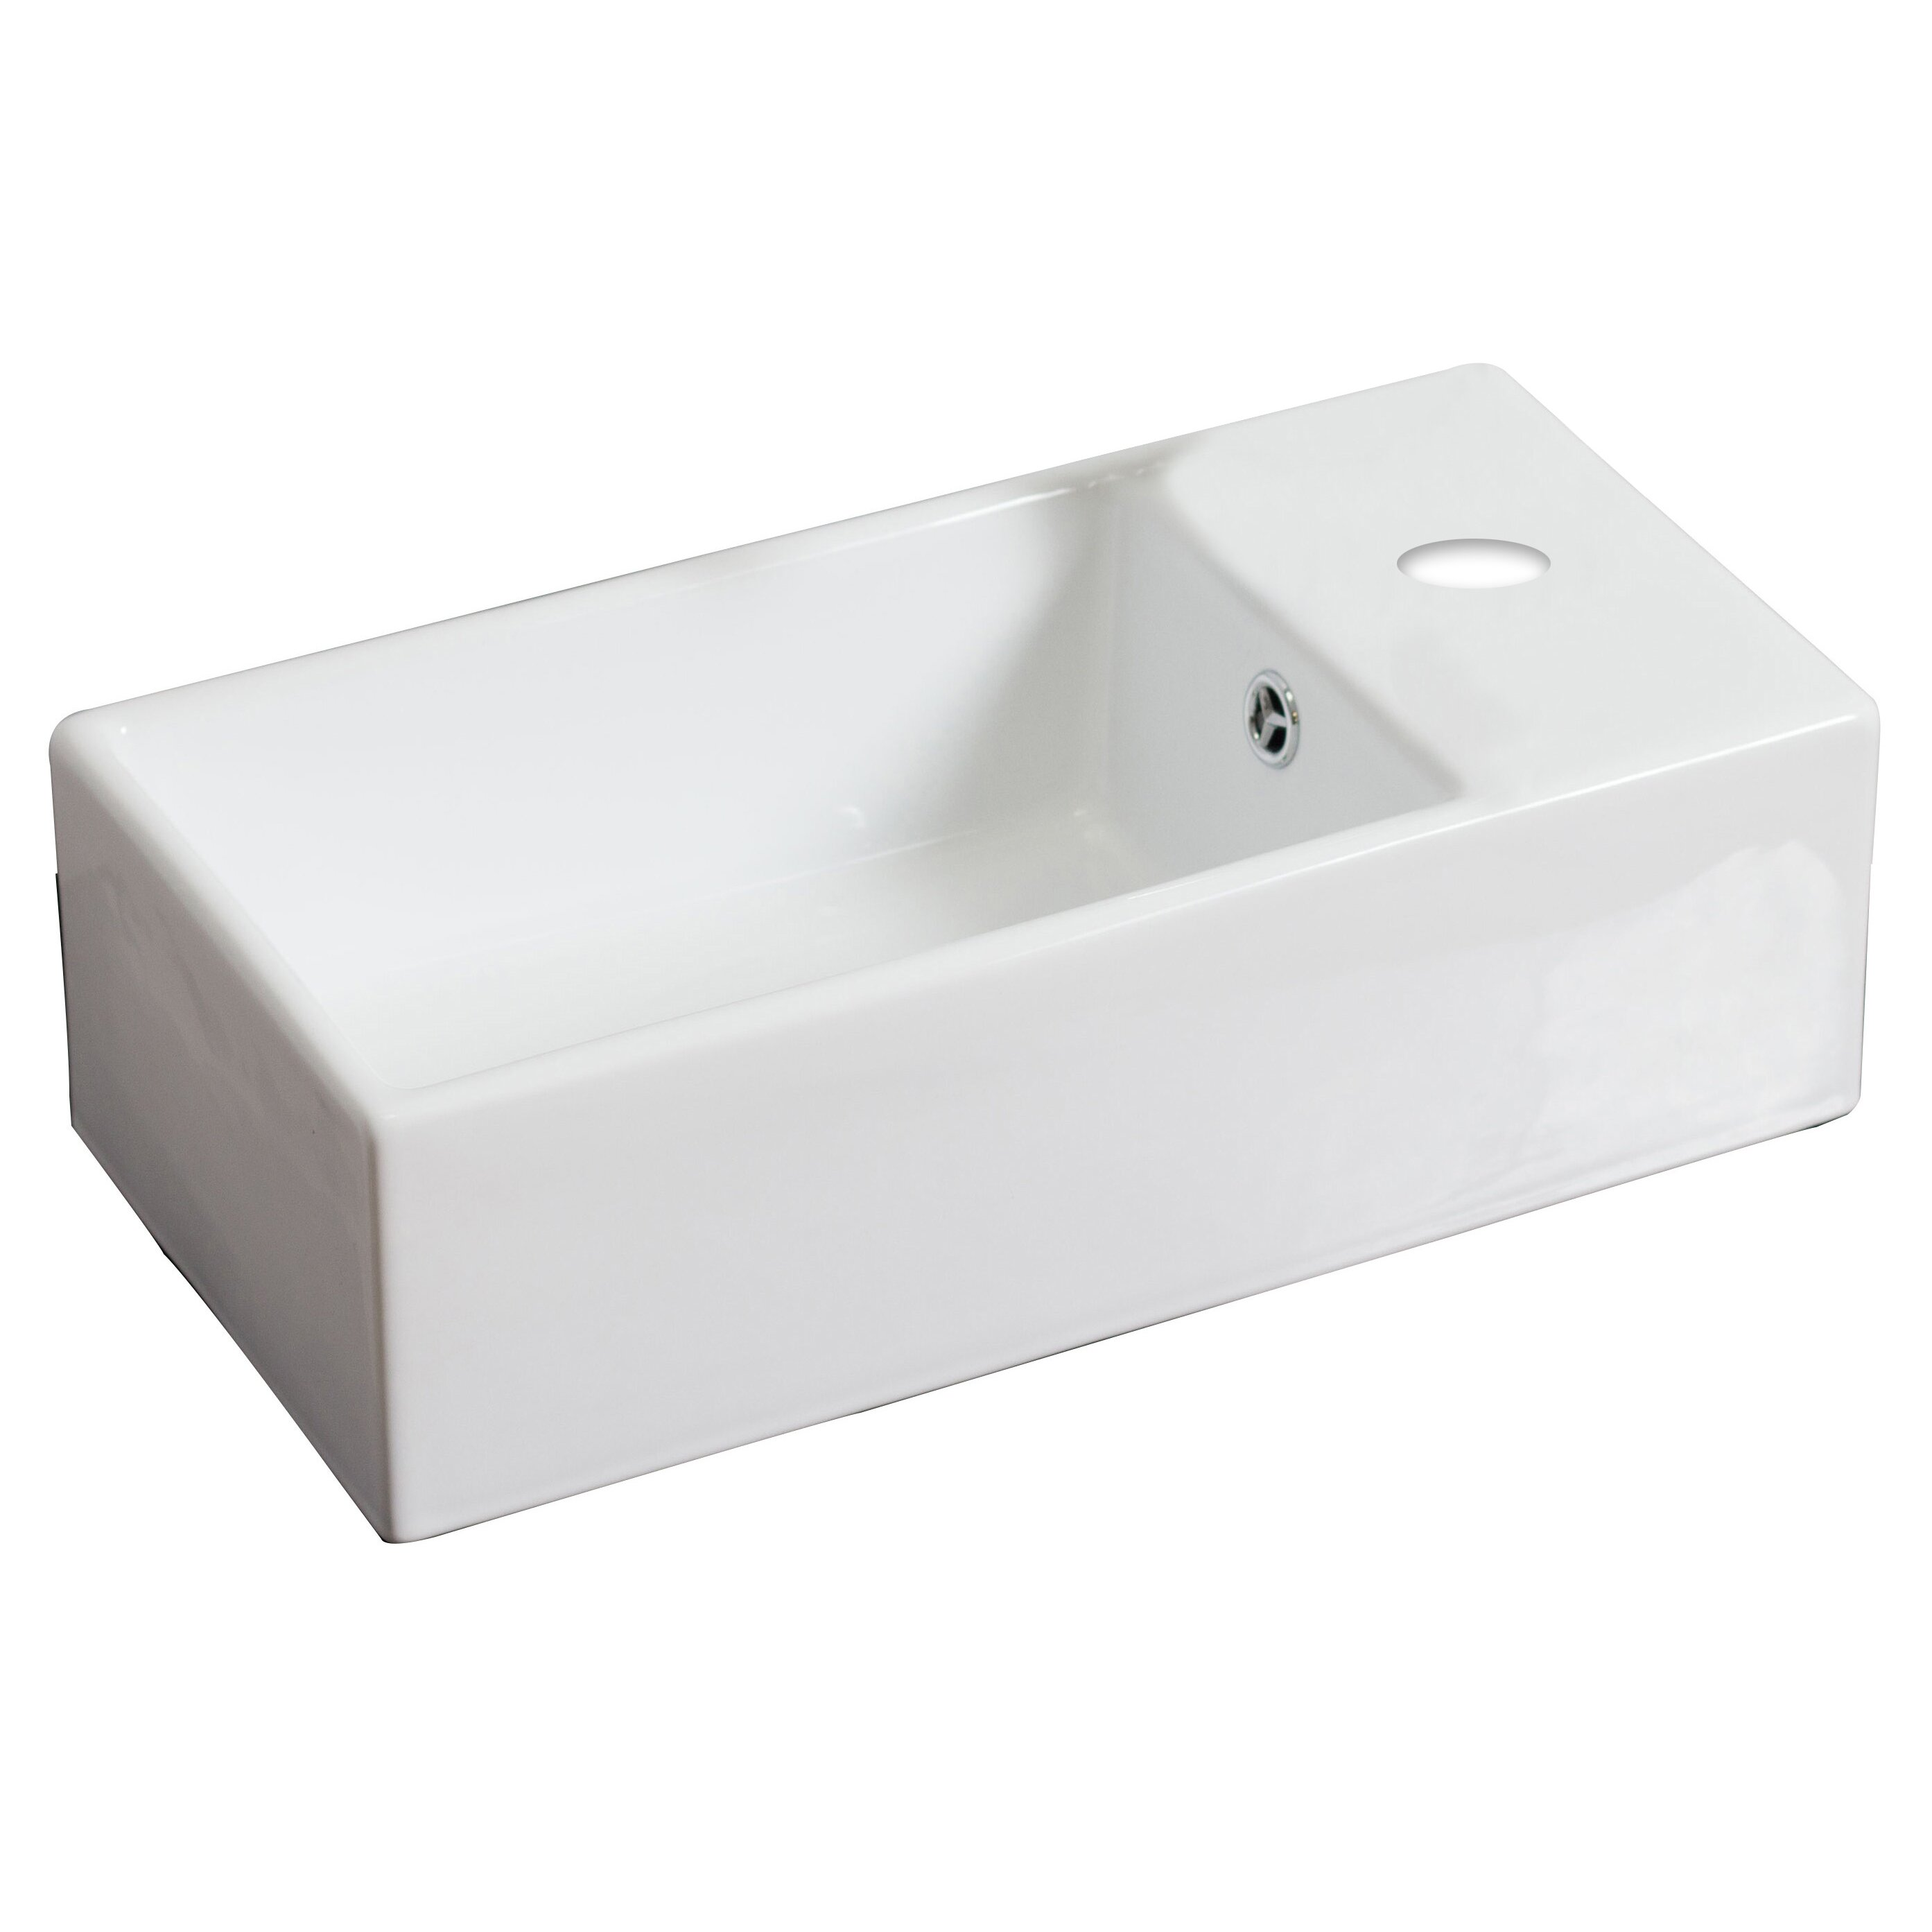 Rectangular Vessel Sink With Overflow : Rectangle Vessel Sink with Overflow by American Imaginations